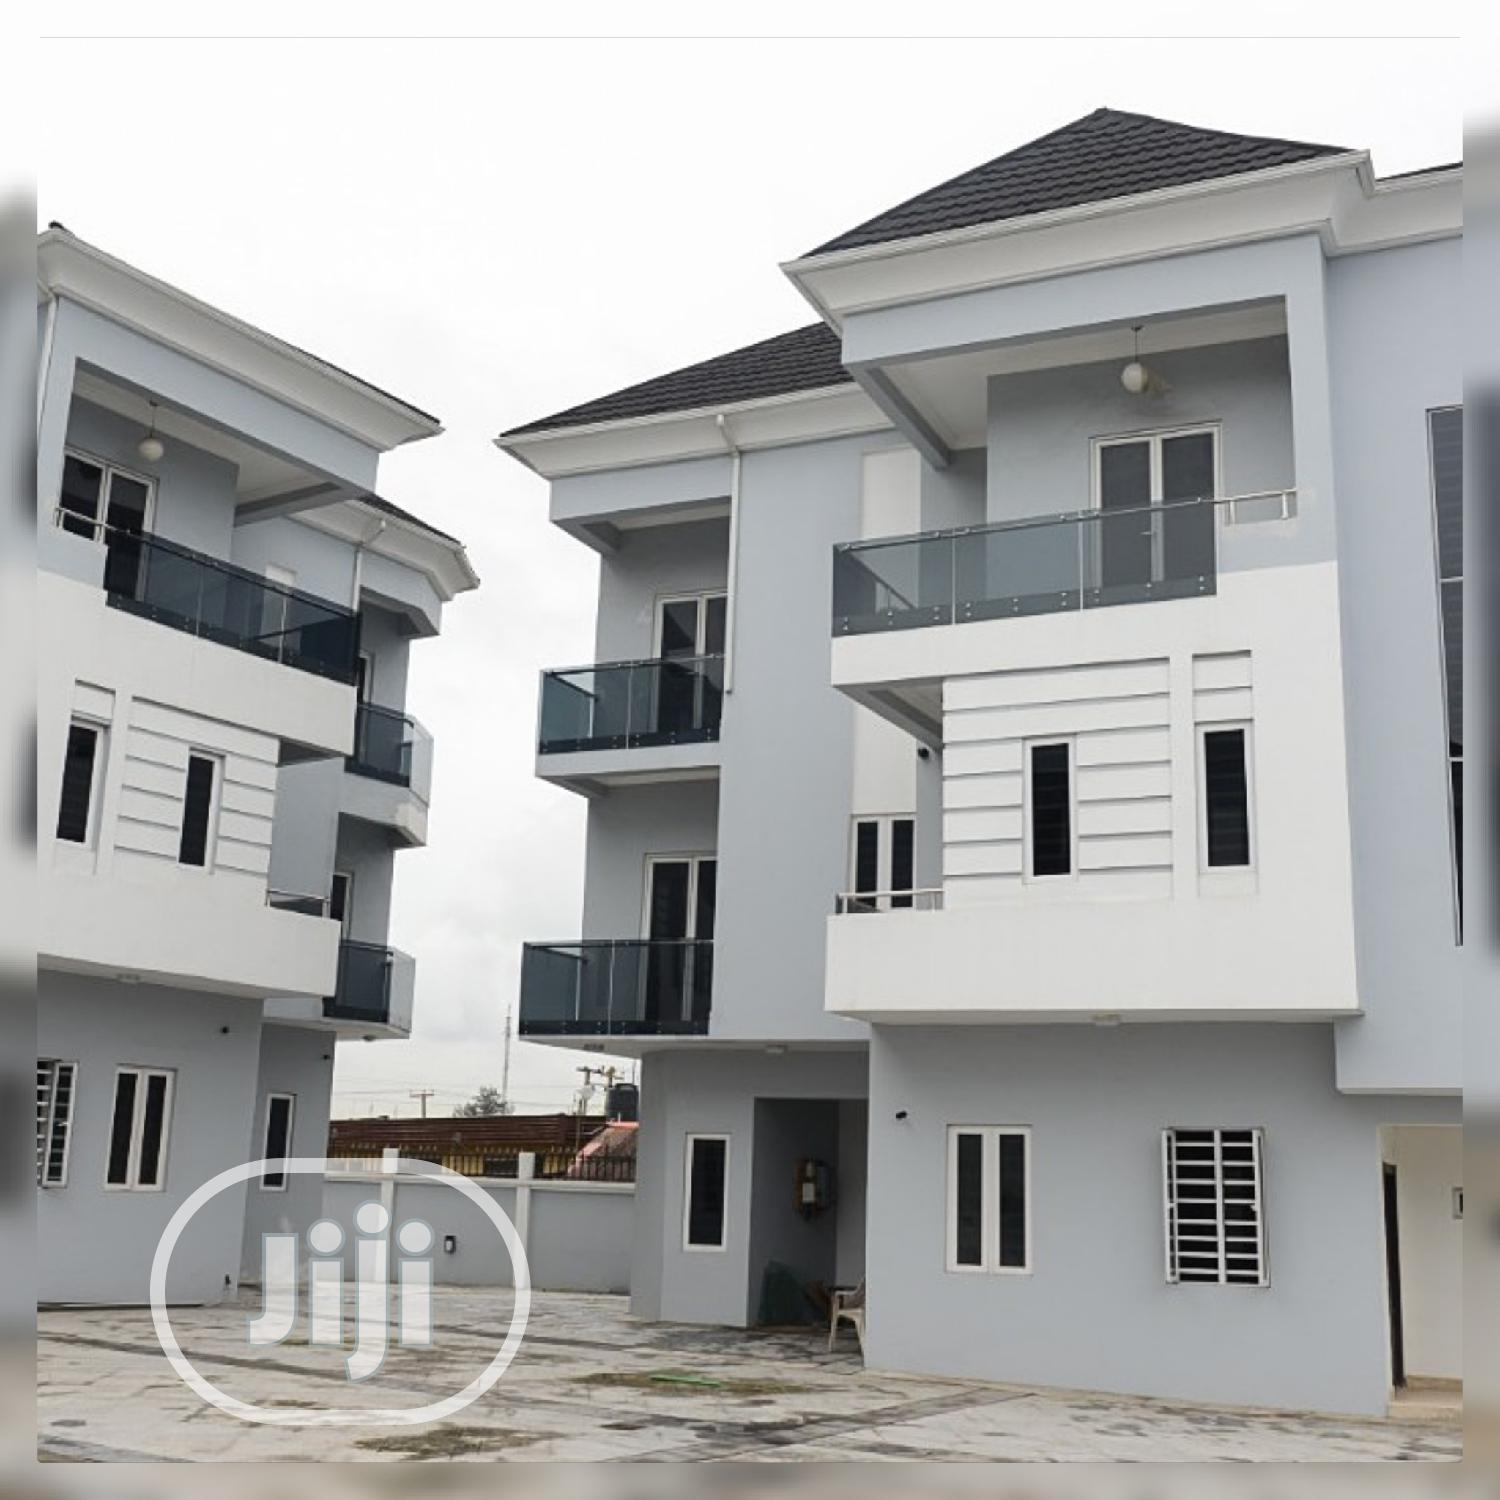 4 Bedroom Fully Detached Duplex With BQ For Sale In Ikeja | Houses & Apartments For Sale for sale in Adeniyi Jones, Ikeja, Nigeria